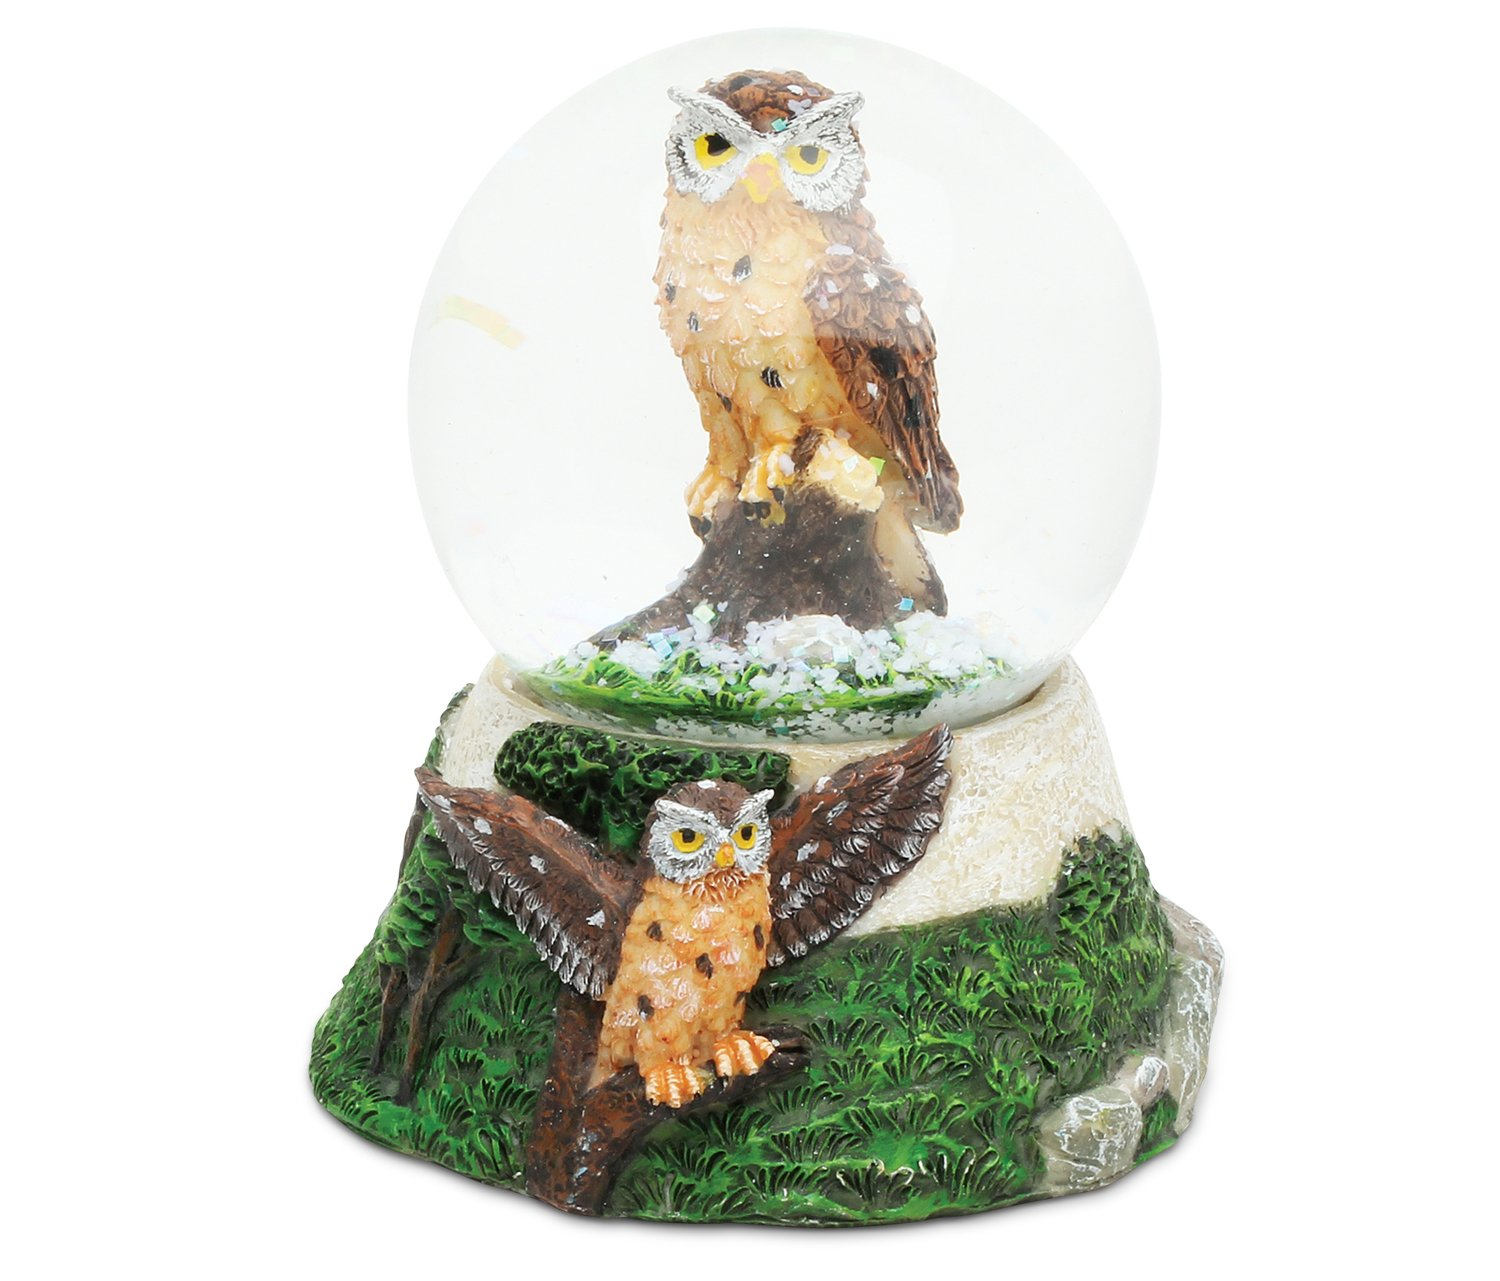 Puzzled Owl Resin Stone Finish Snow Globe - Animals Collection - 65 MM - Unique Elegant Gift and Souvenir - Item #9374